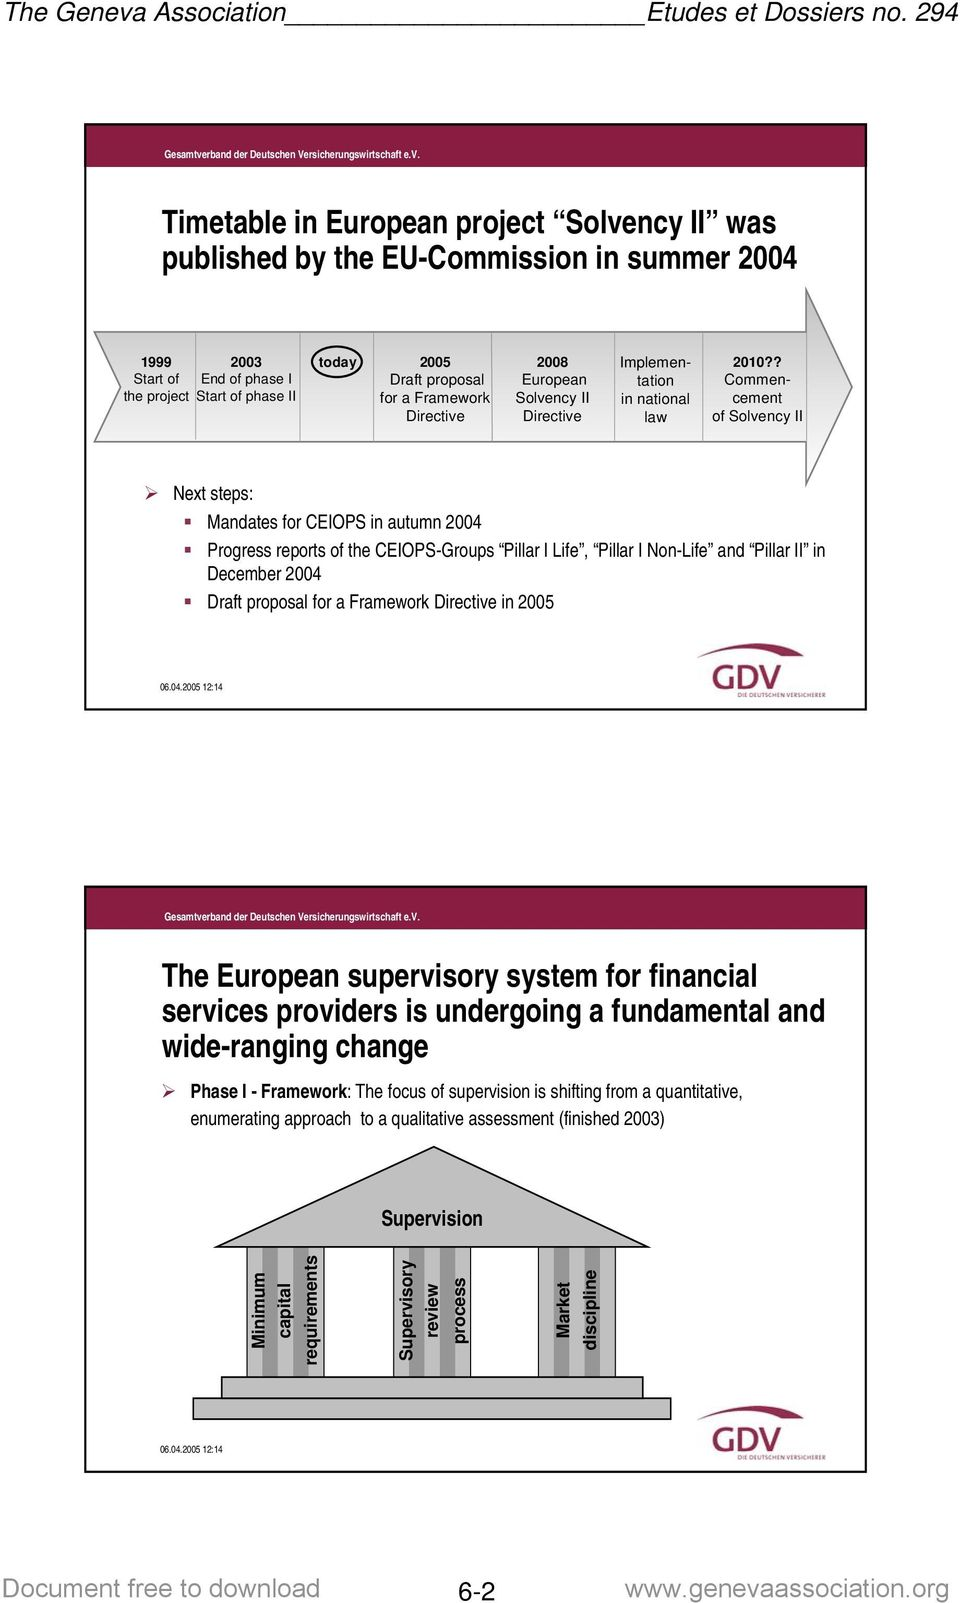 ? Commencement of Solvency II Next steps: Mandates for CEIOPS in autumn 2004 Progress reports of the CEIOPS-Groups Pillar I Life, Pillar I Non-Life and Pillar II in December 2004 Draft proposal for a